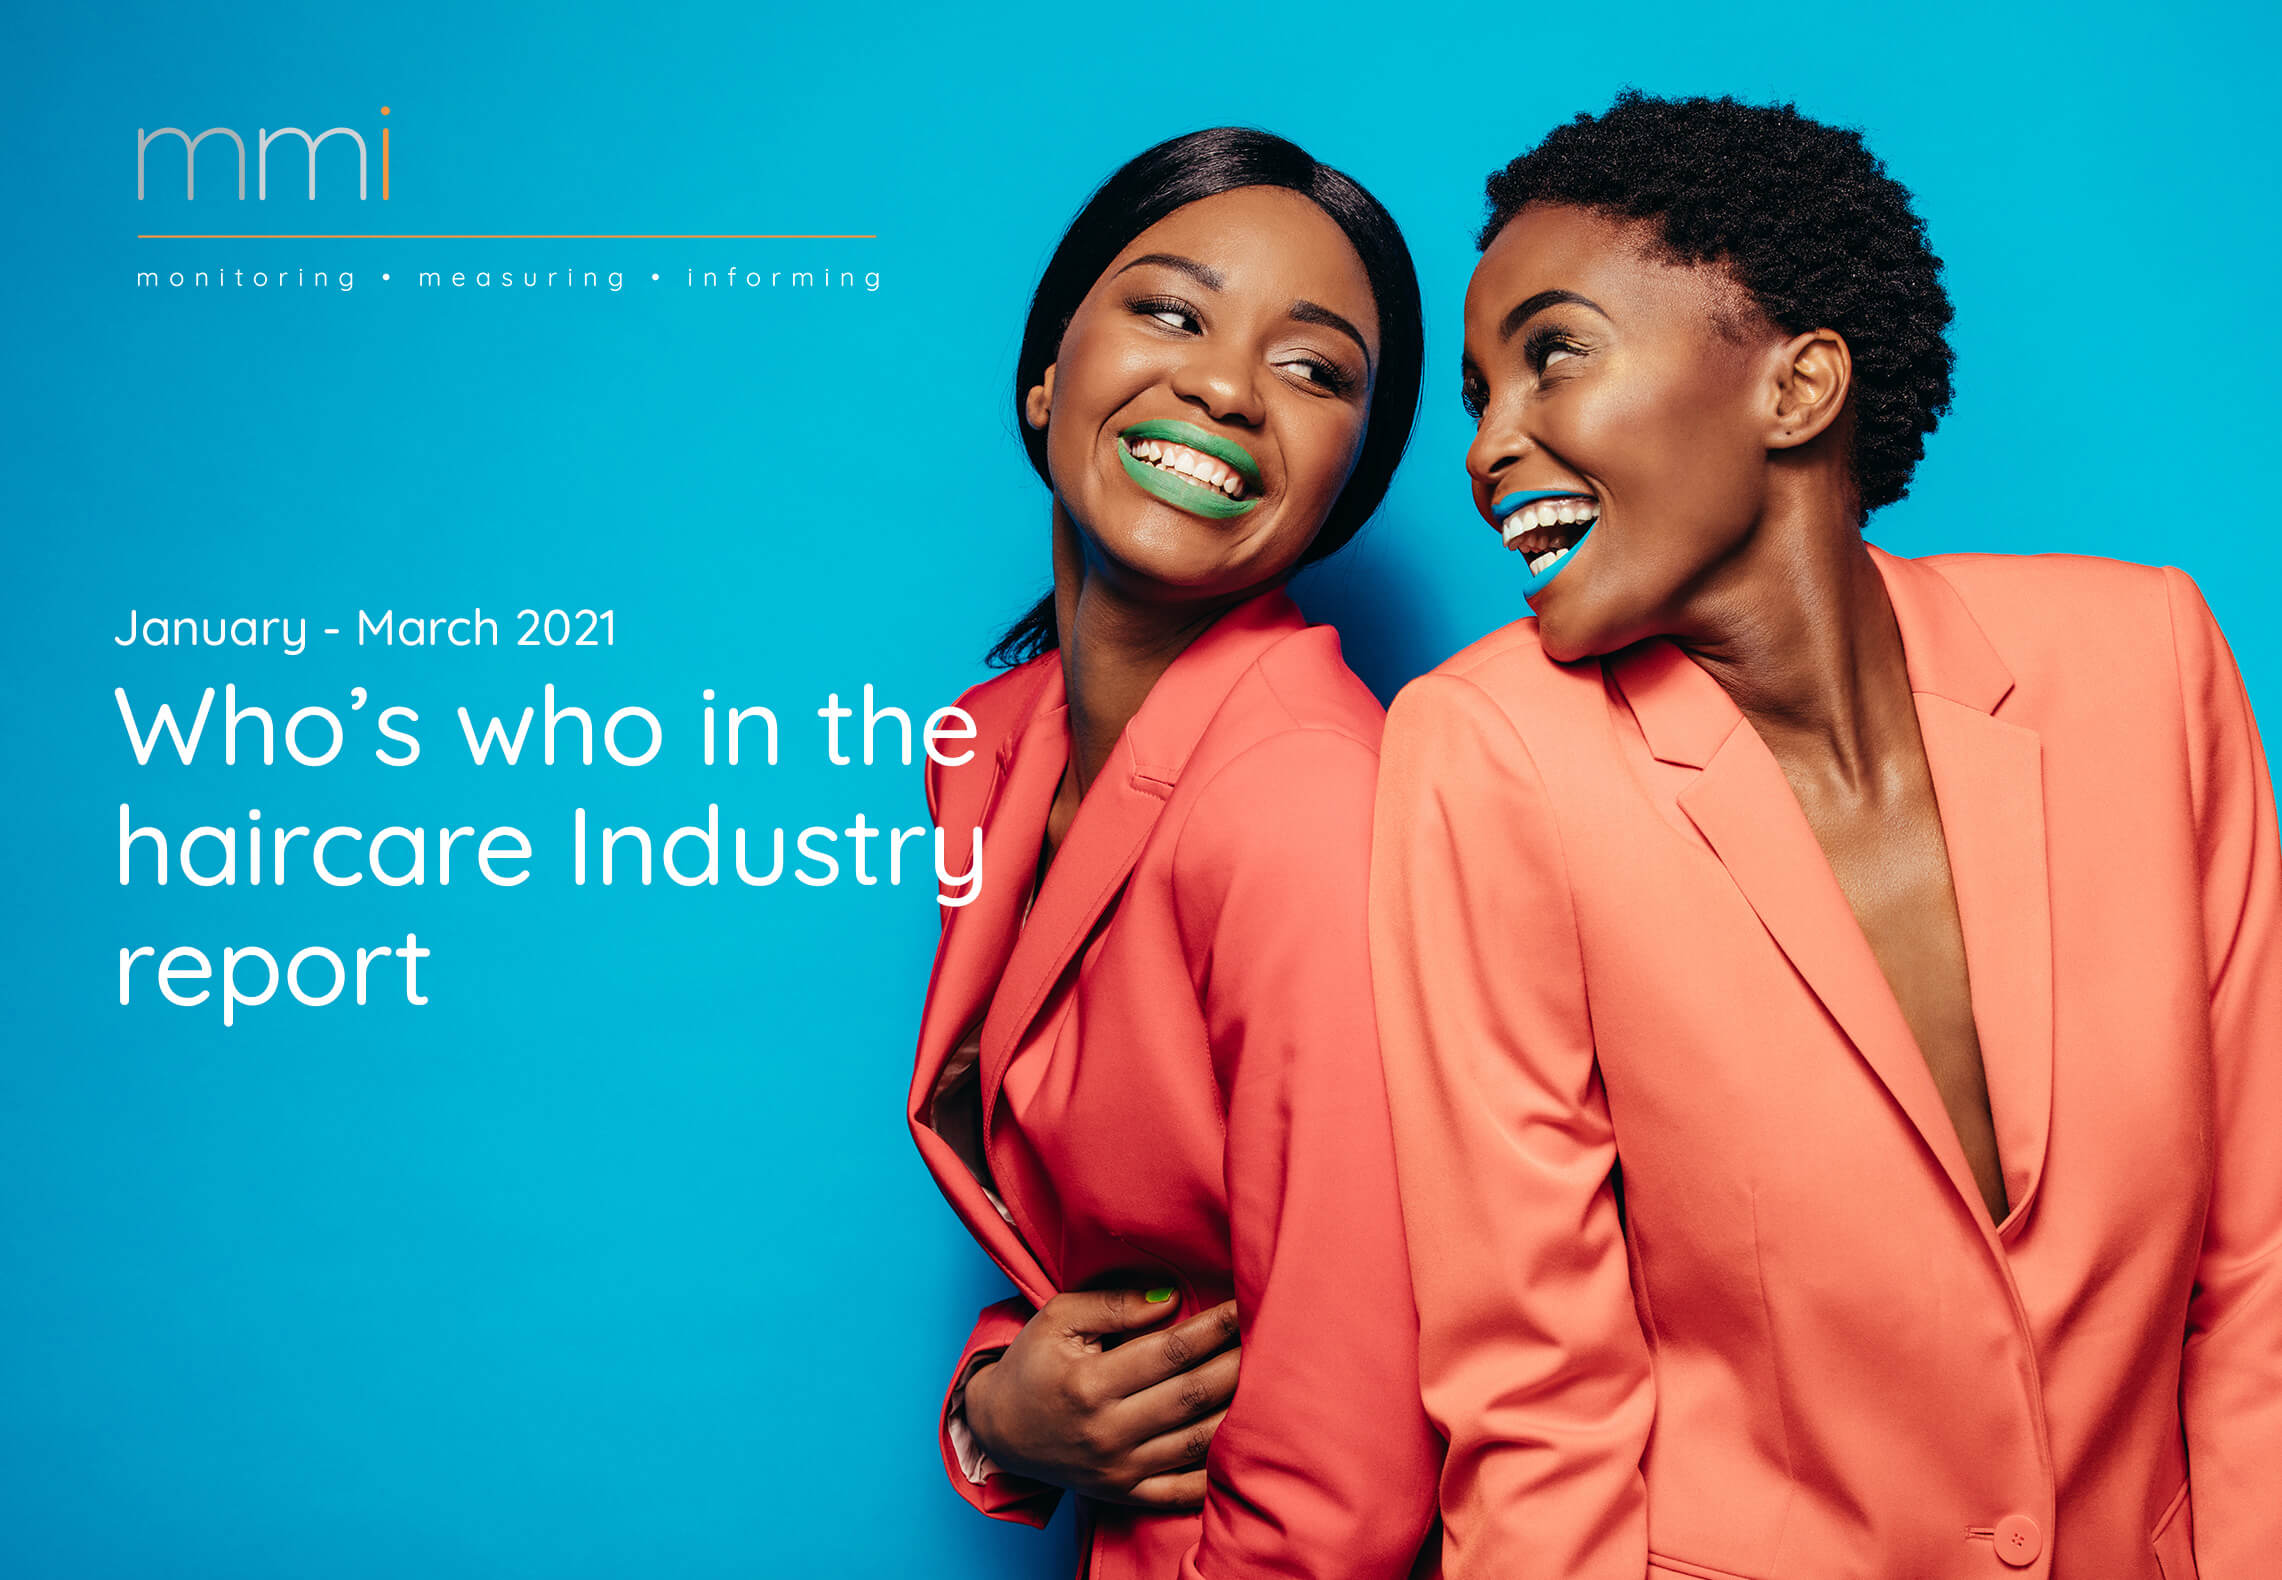 Whos-who-in-the-haircare-industry-report---Jan-to-Mar-2021---Page-Thumbnail